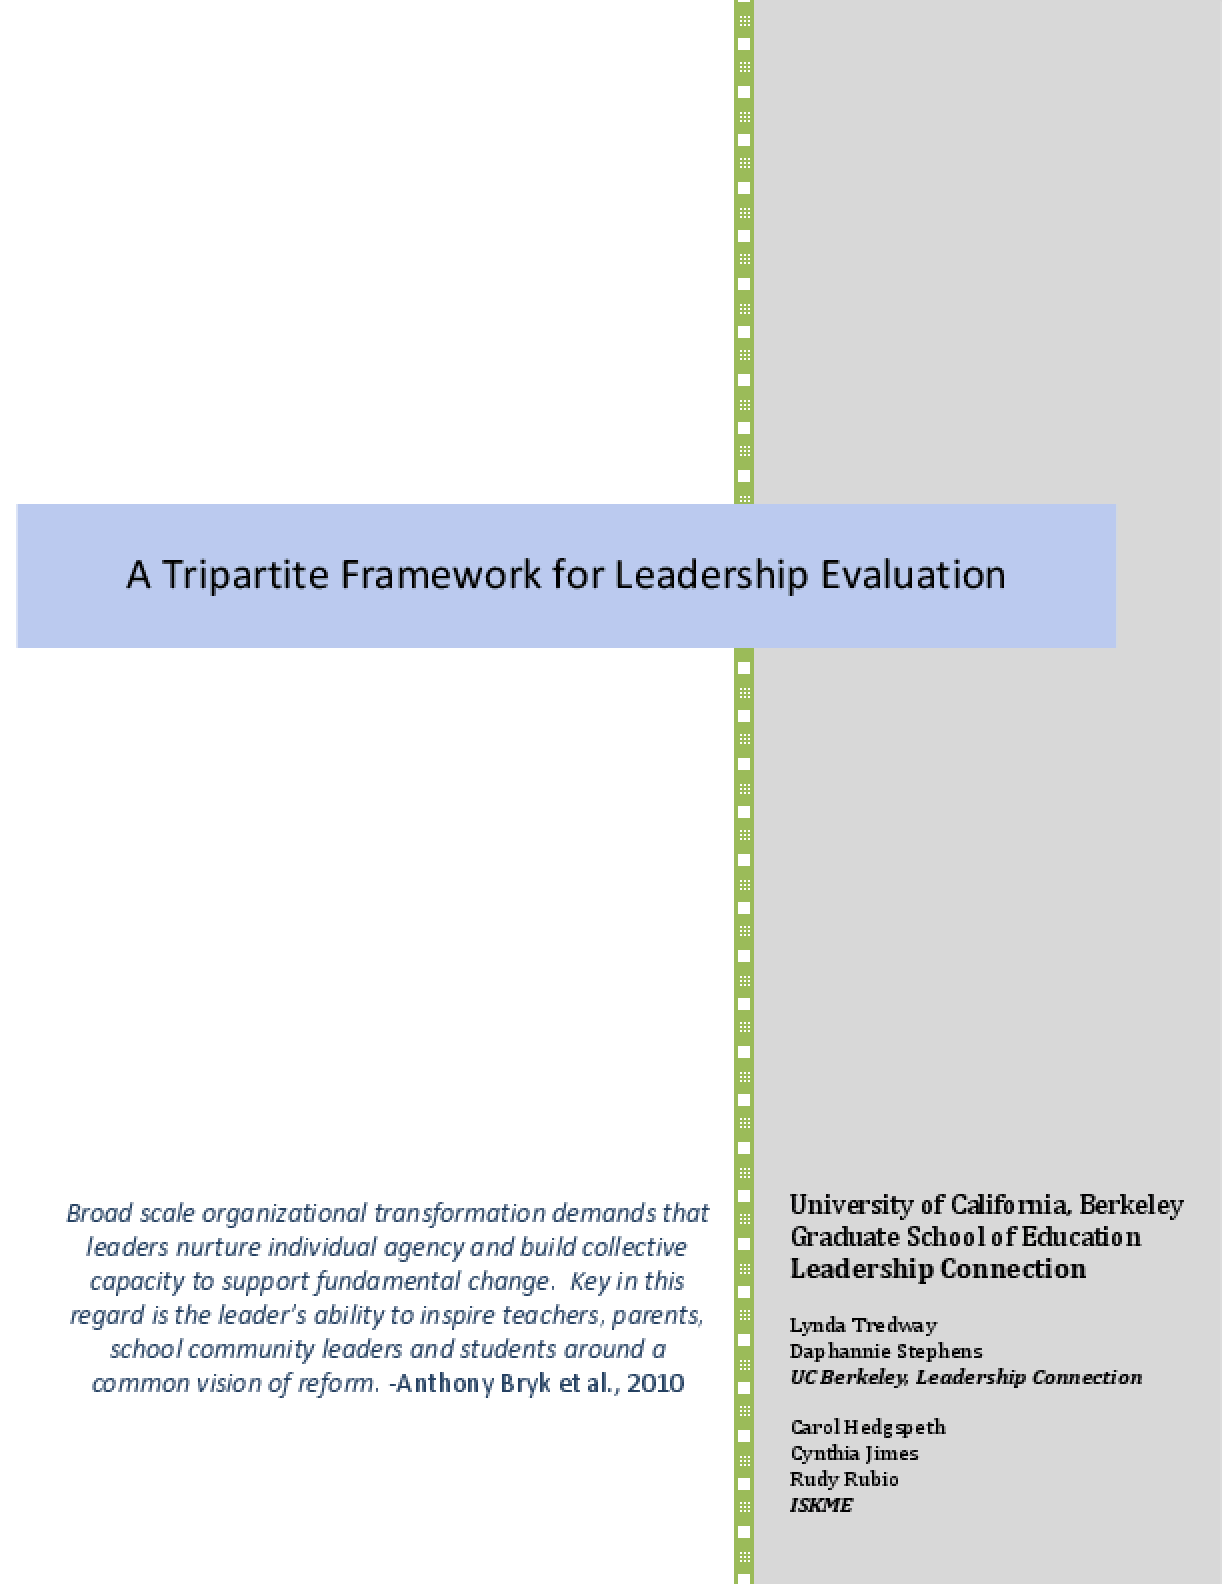 A Tripartite Framework for Leadership Evaluation